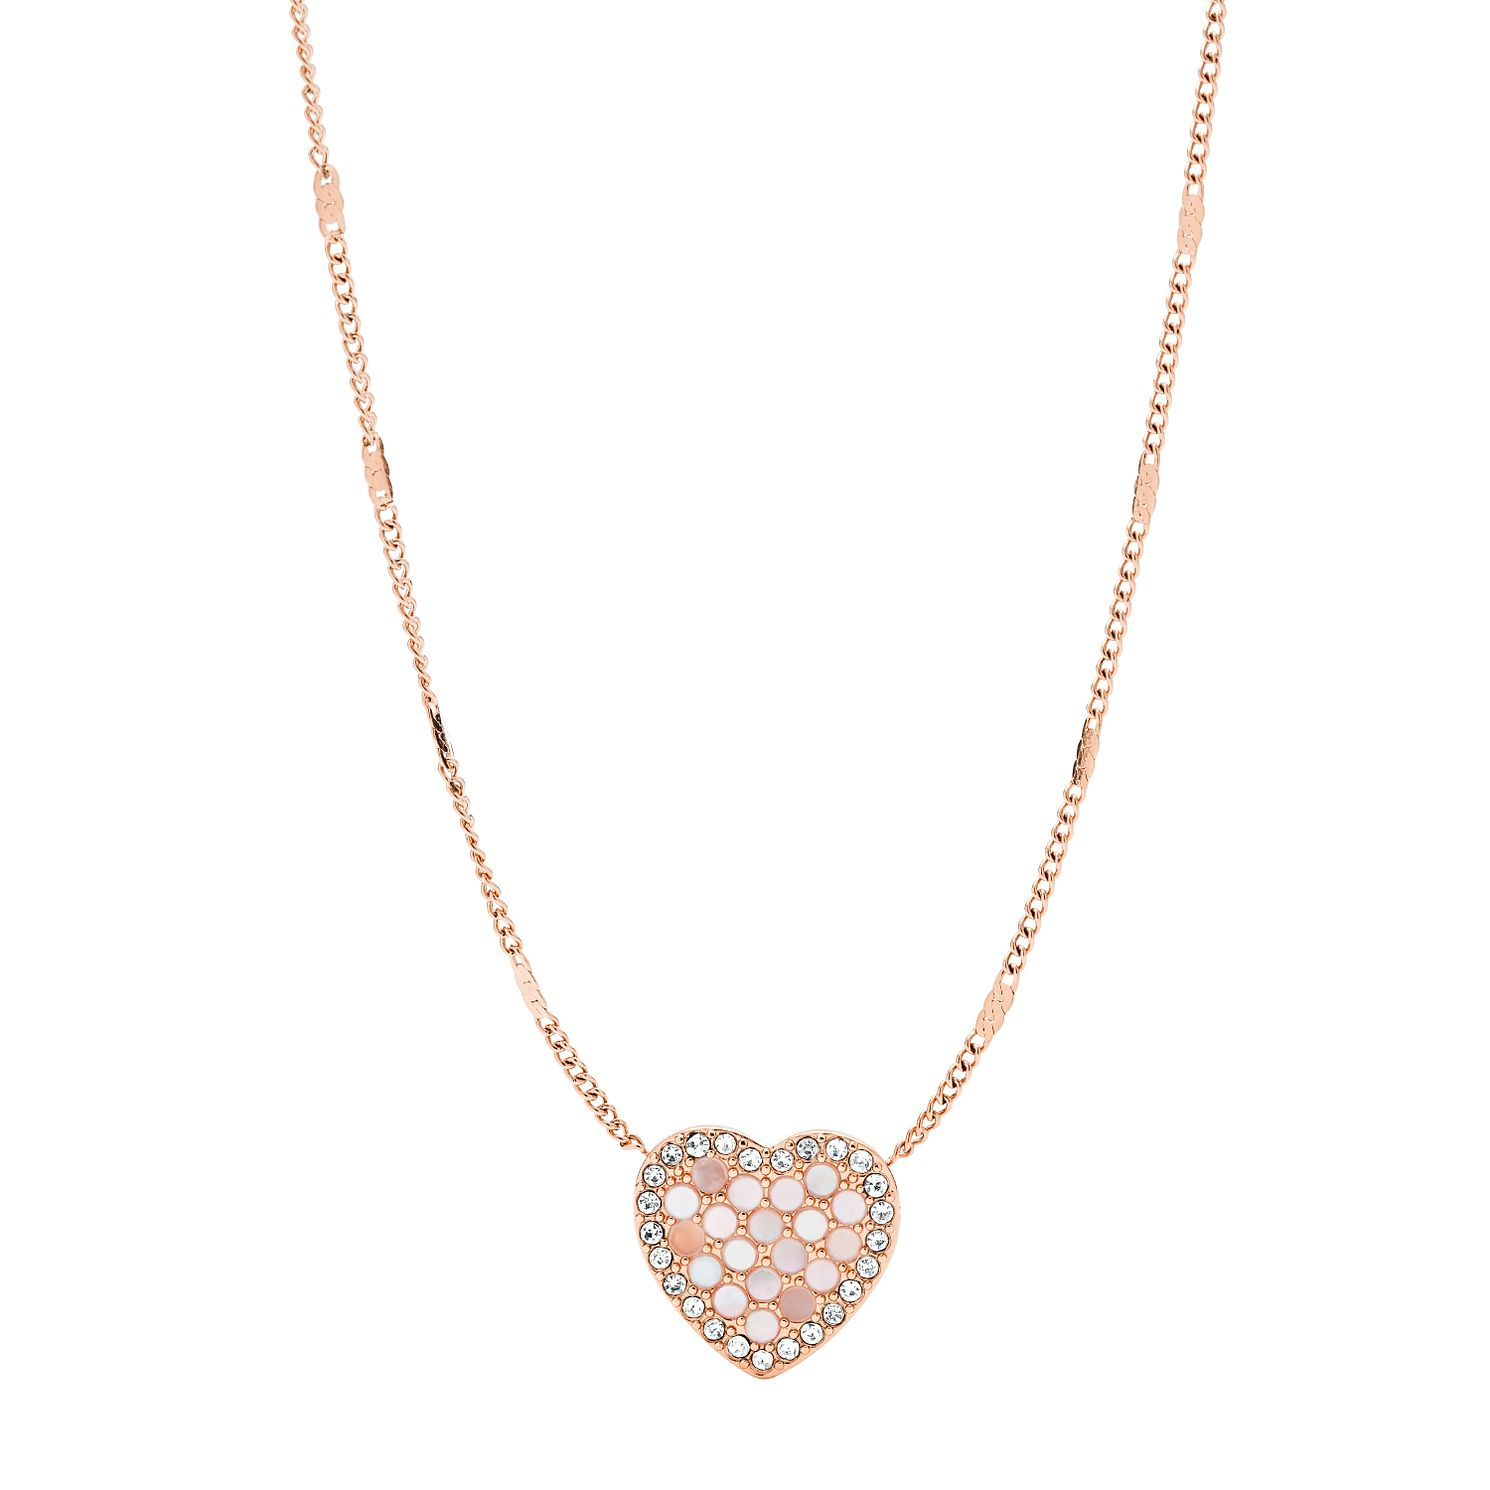 Fossil Rose Gold Tone Cubic Zirconia Glitz Heart Necklace - Product number 2471442